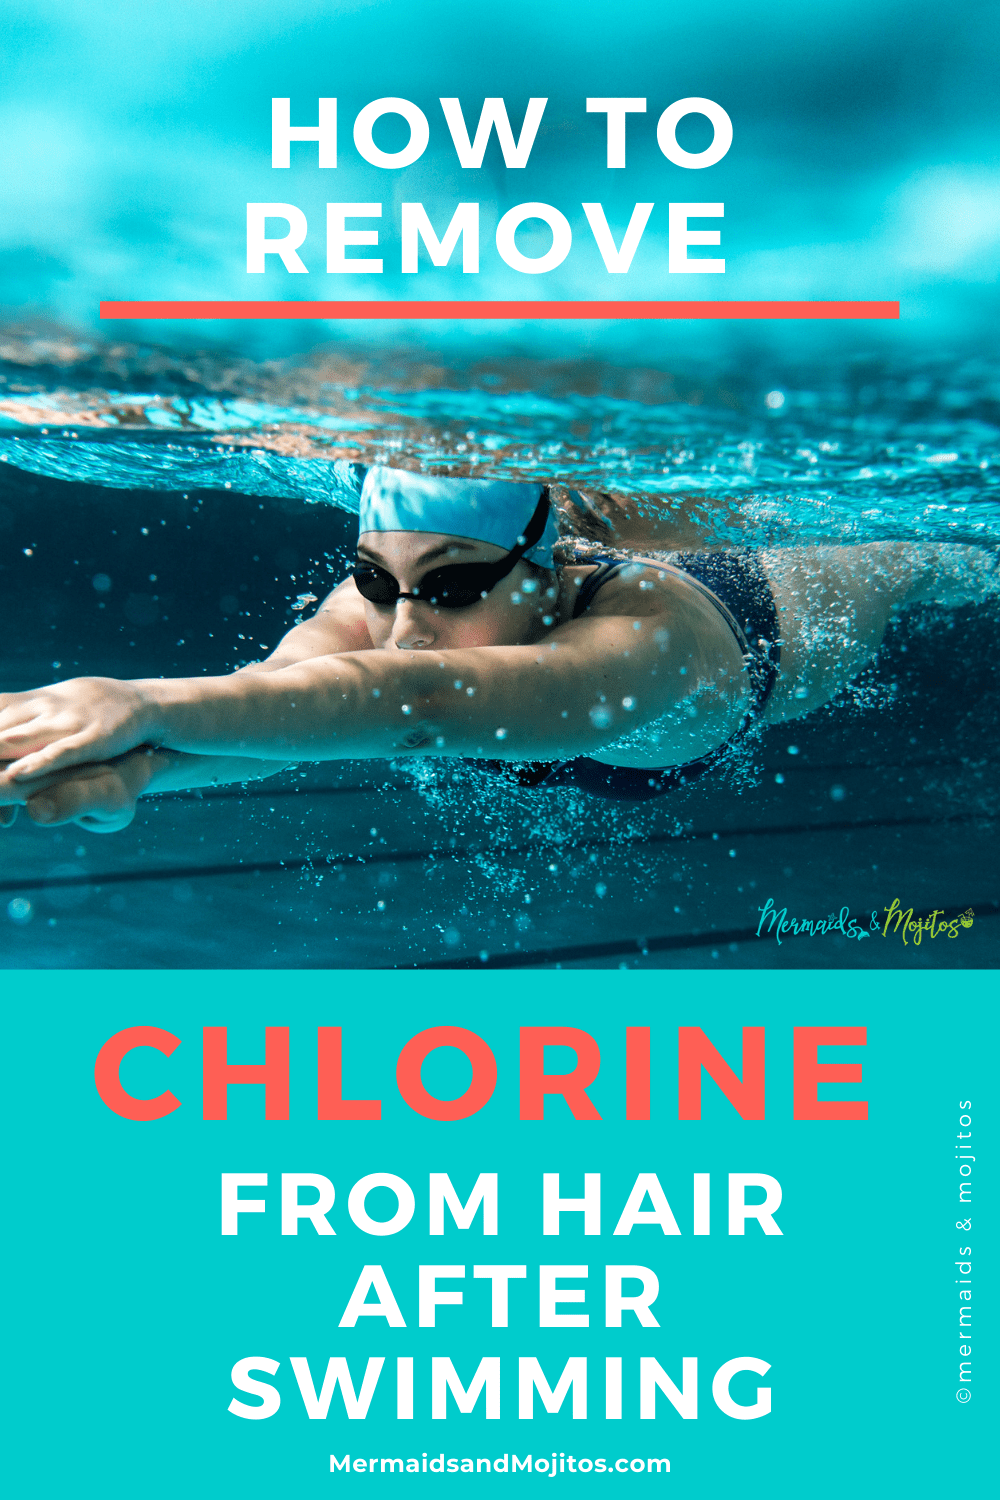 Easy DIY chlorine remover for hair. How to Remove Chlorine from Hair.  Learn how to quickly and easily remove chlorine from hair without spending a fortune on over-priced hair products that don't work. DIY chlorine-removing rinse. Say Goodbye to summer straw hair. via @mermaidsandmojitos